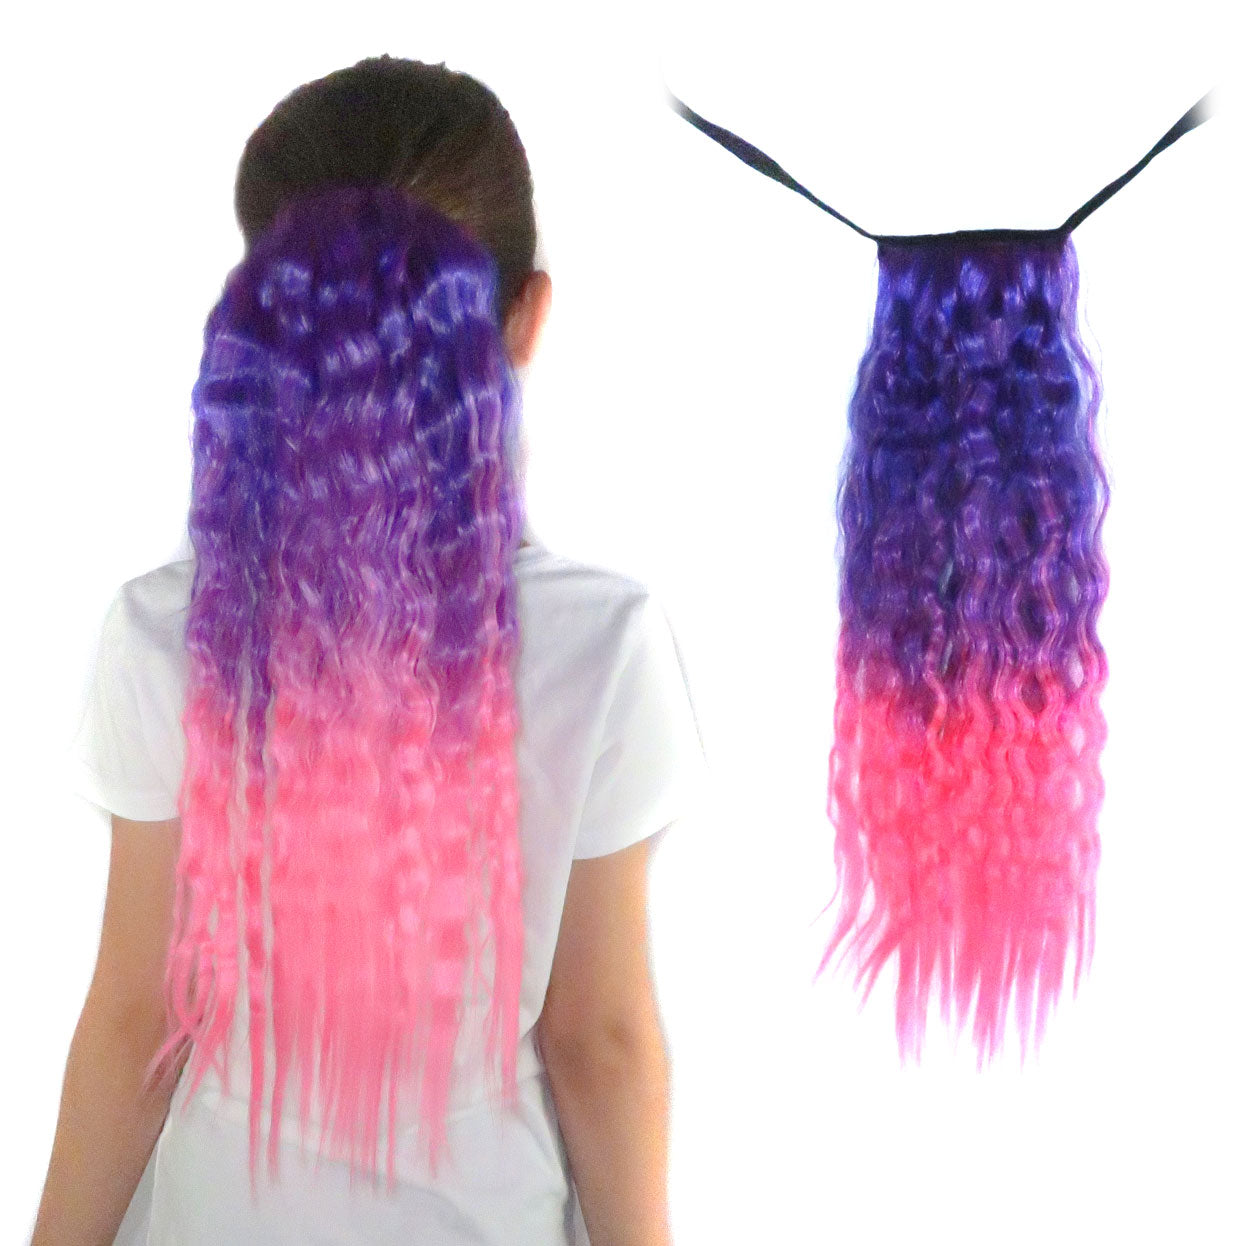 Wavy purple to pink ponytail hair extension for kids and teens